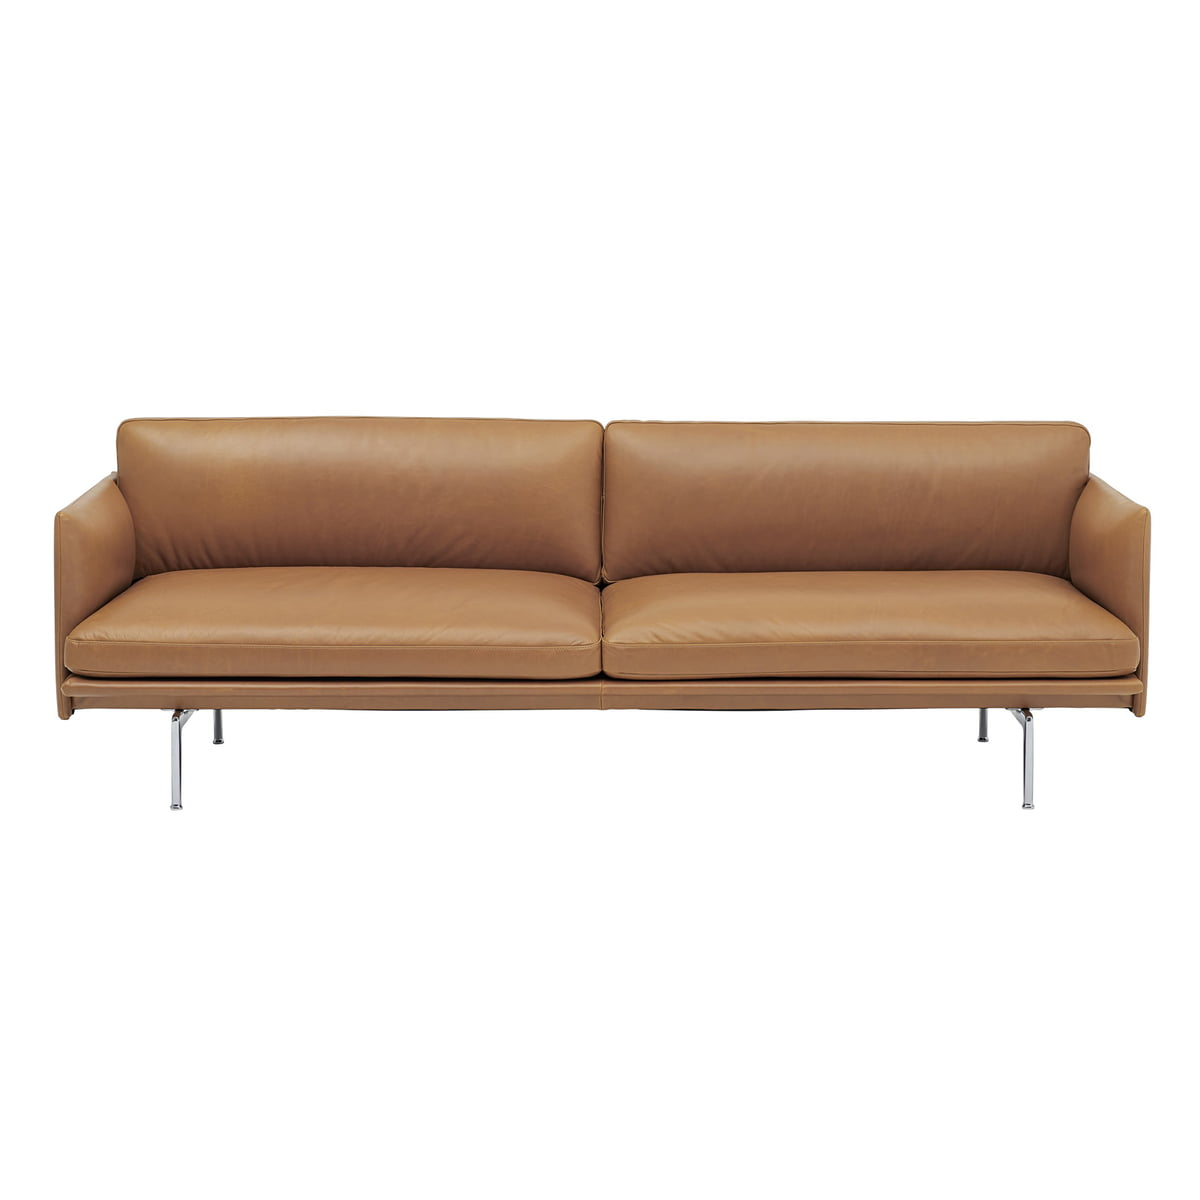 Outline Sofa 3 Seater By Muuto Connox